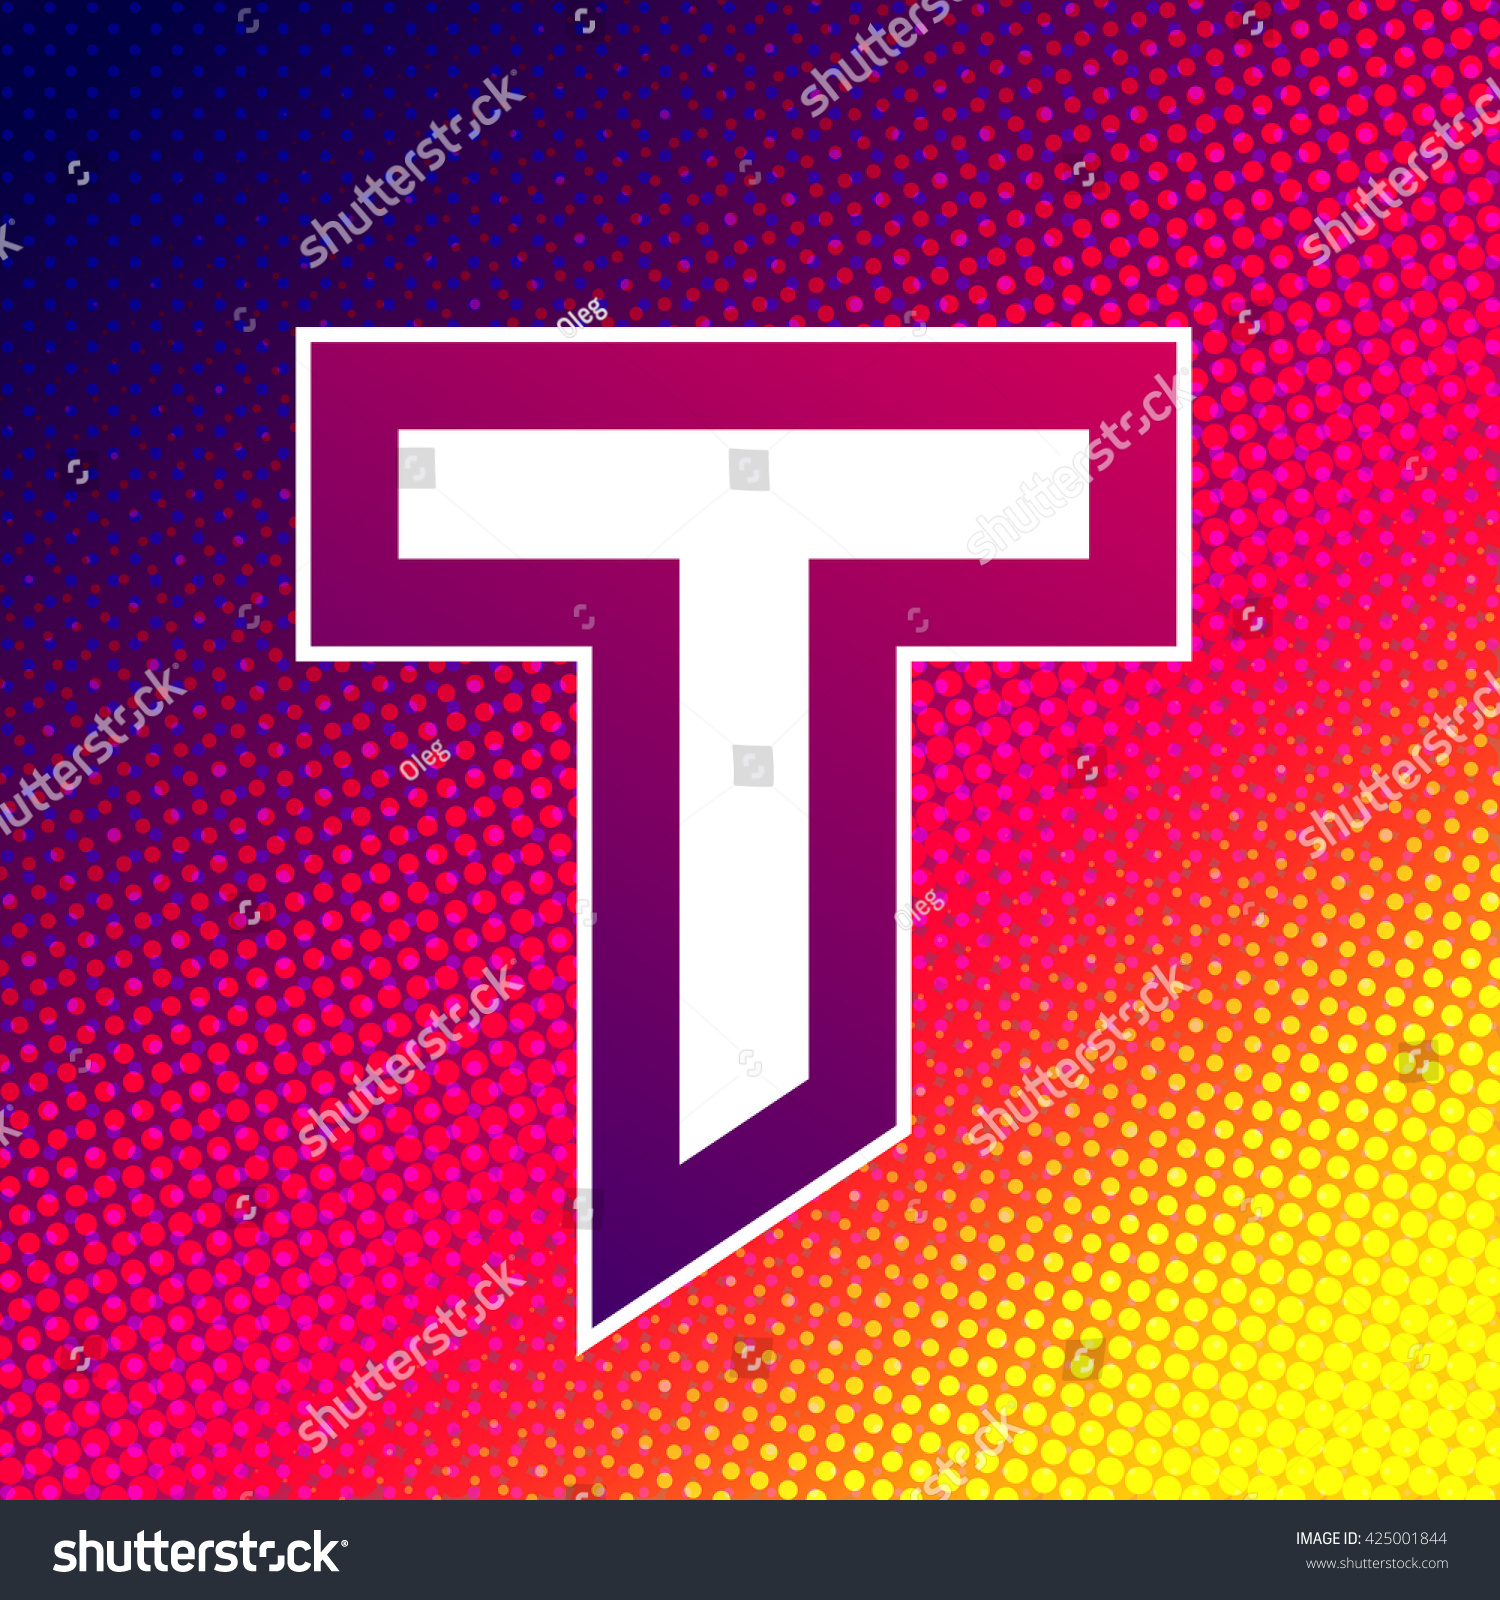 Abstract Colorful Letter T On Halftone Stock Vector (Royalty Free ...